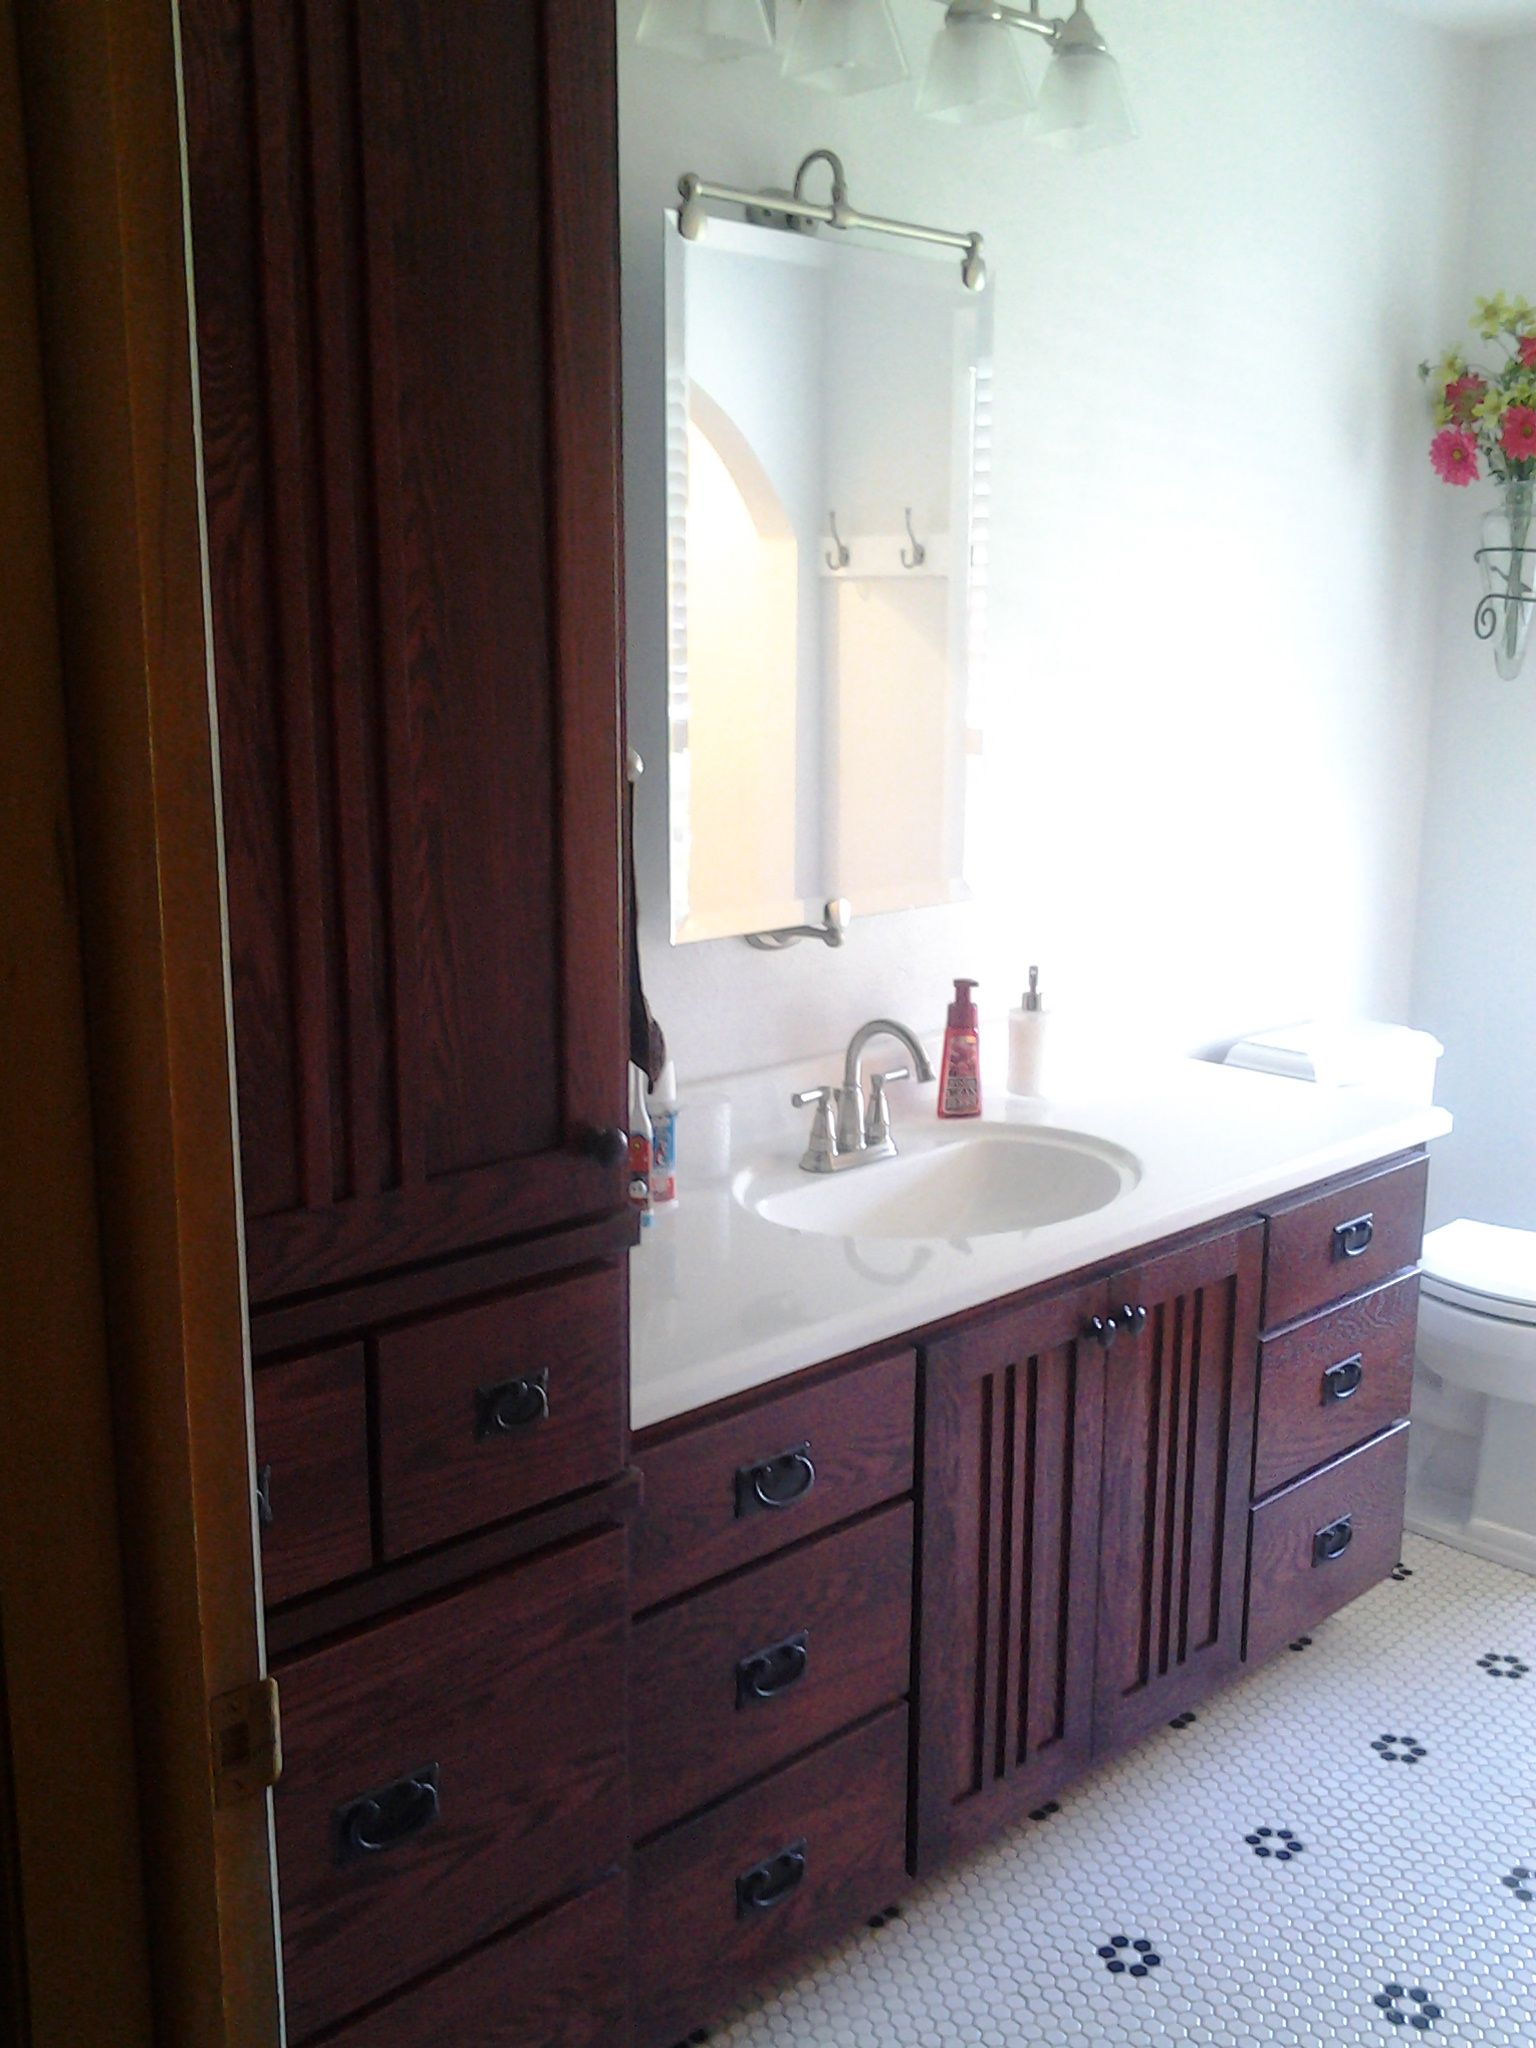 terrific bathroom linen closet and vanity roselawnlutheran. Black Bedroom Furniture Sets. Home Design Ideas